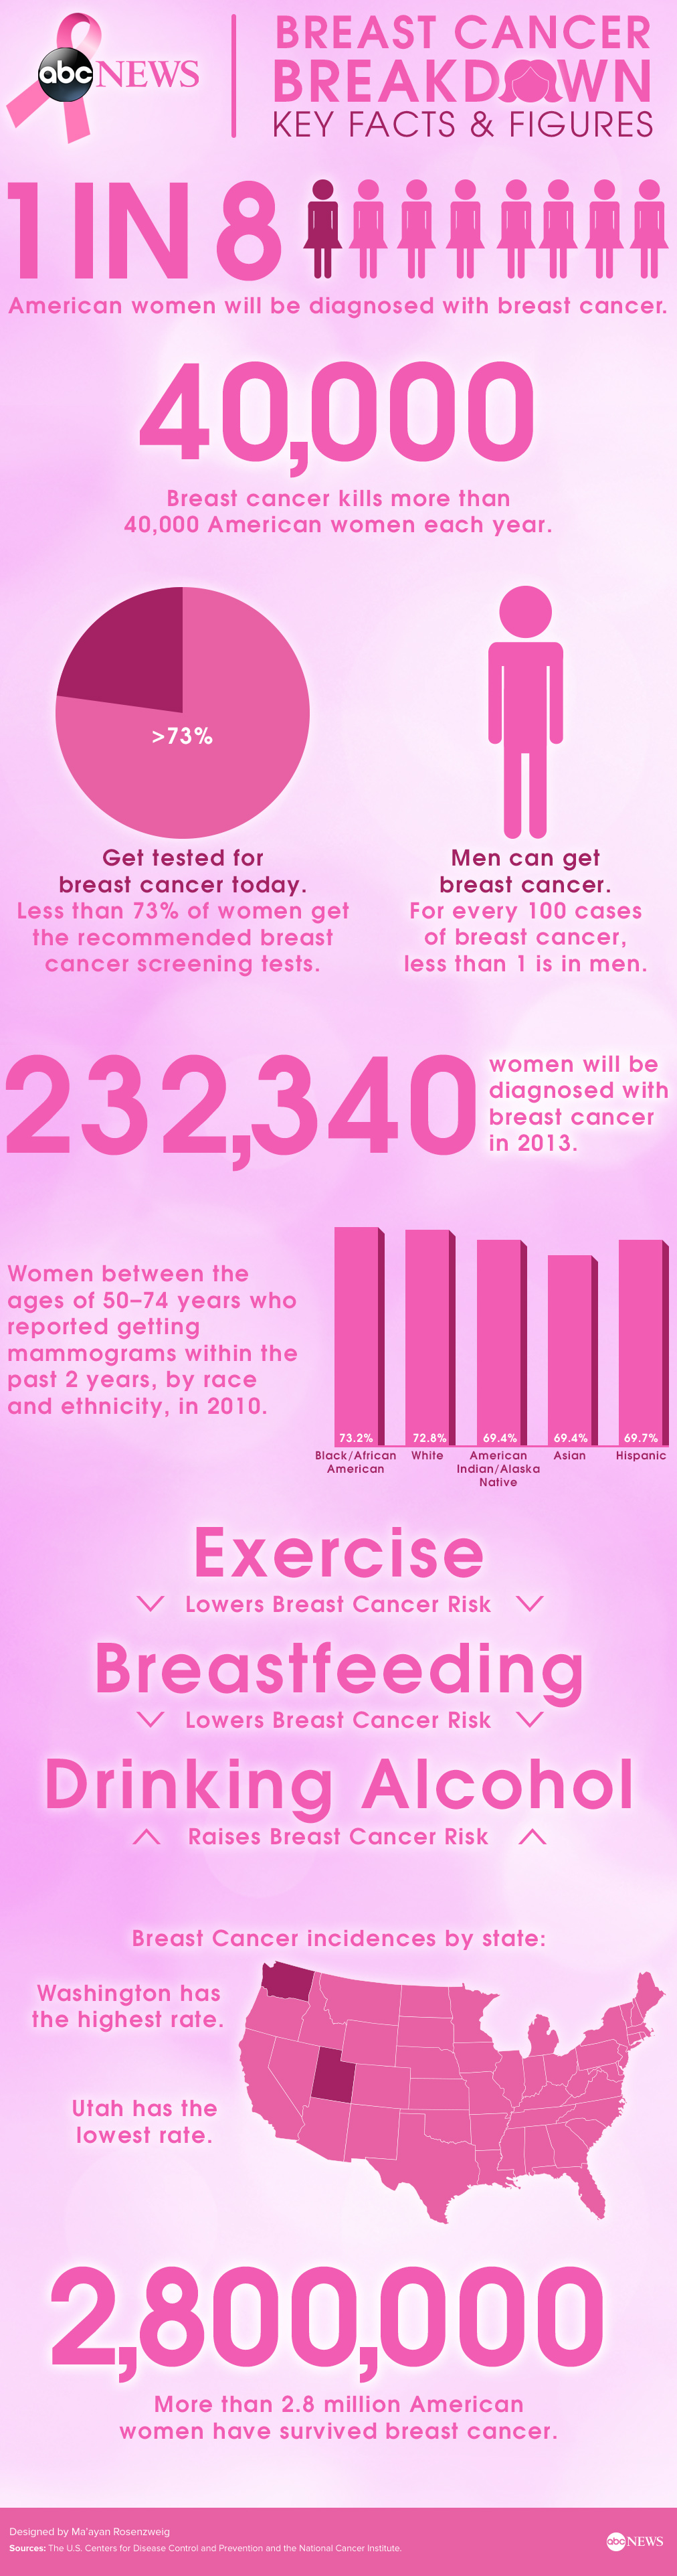 Breast Cancer Key Facts & Figures | Infographic